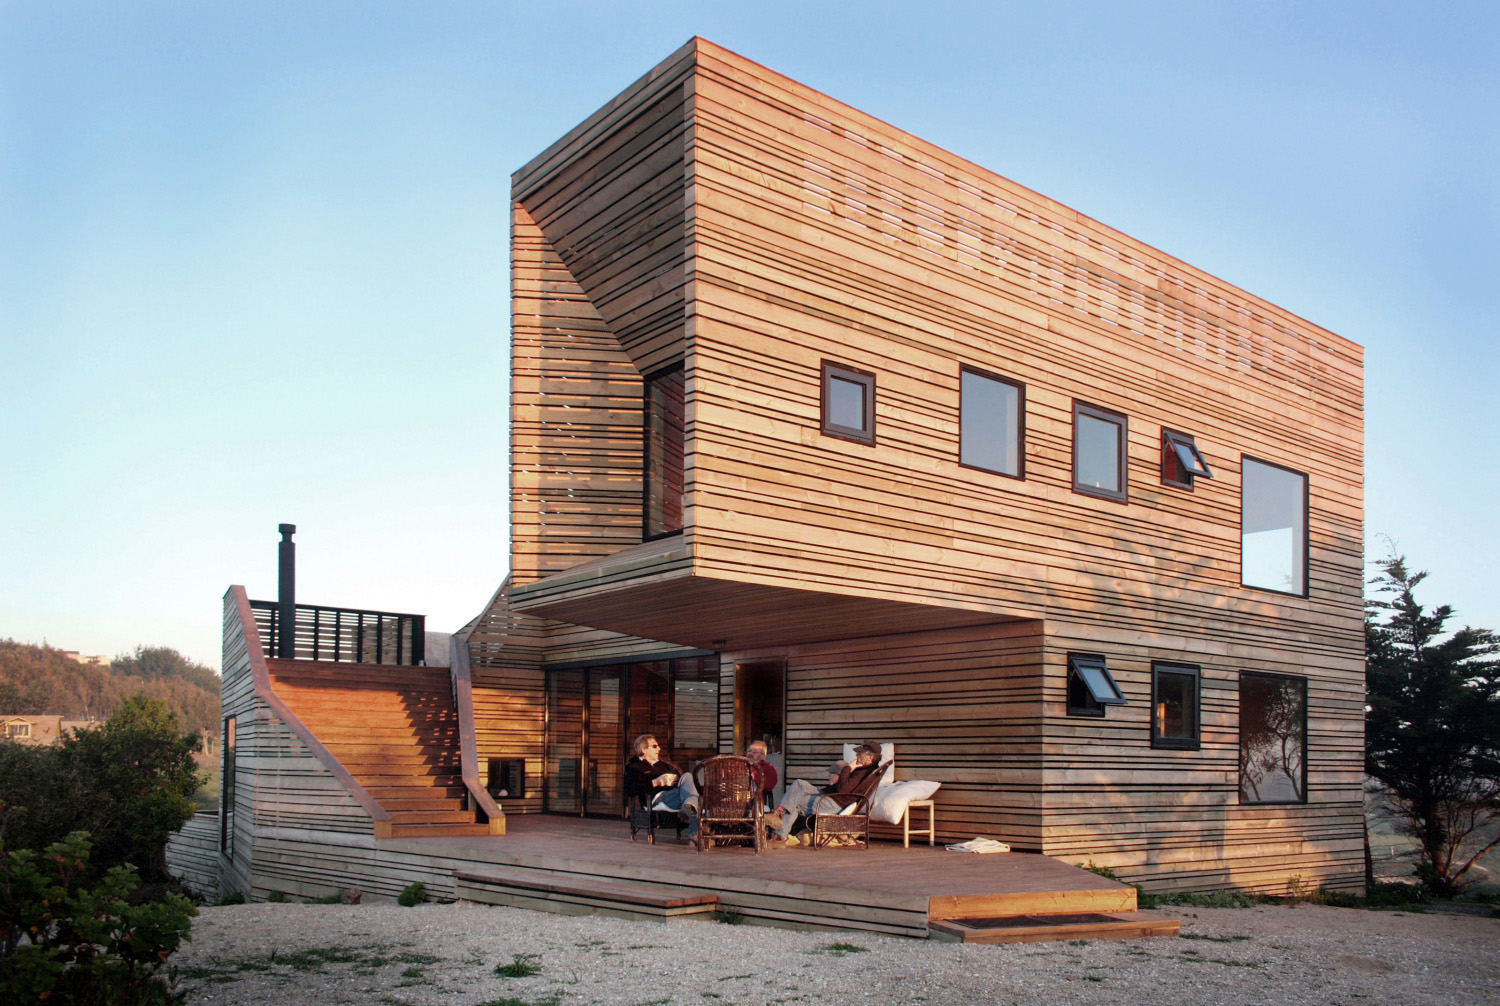 Timber ventilated facade house most beautiful houses in for Fotos de casas de madera